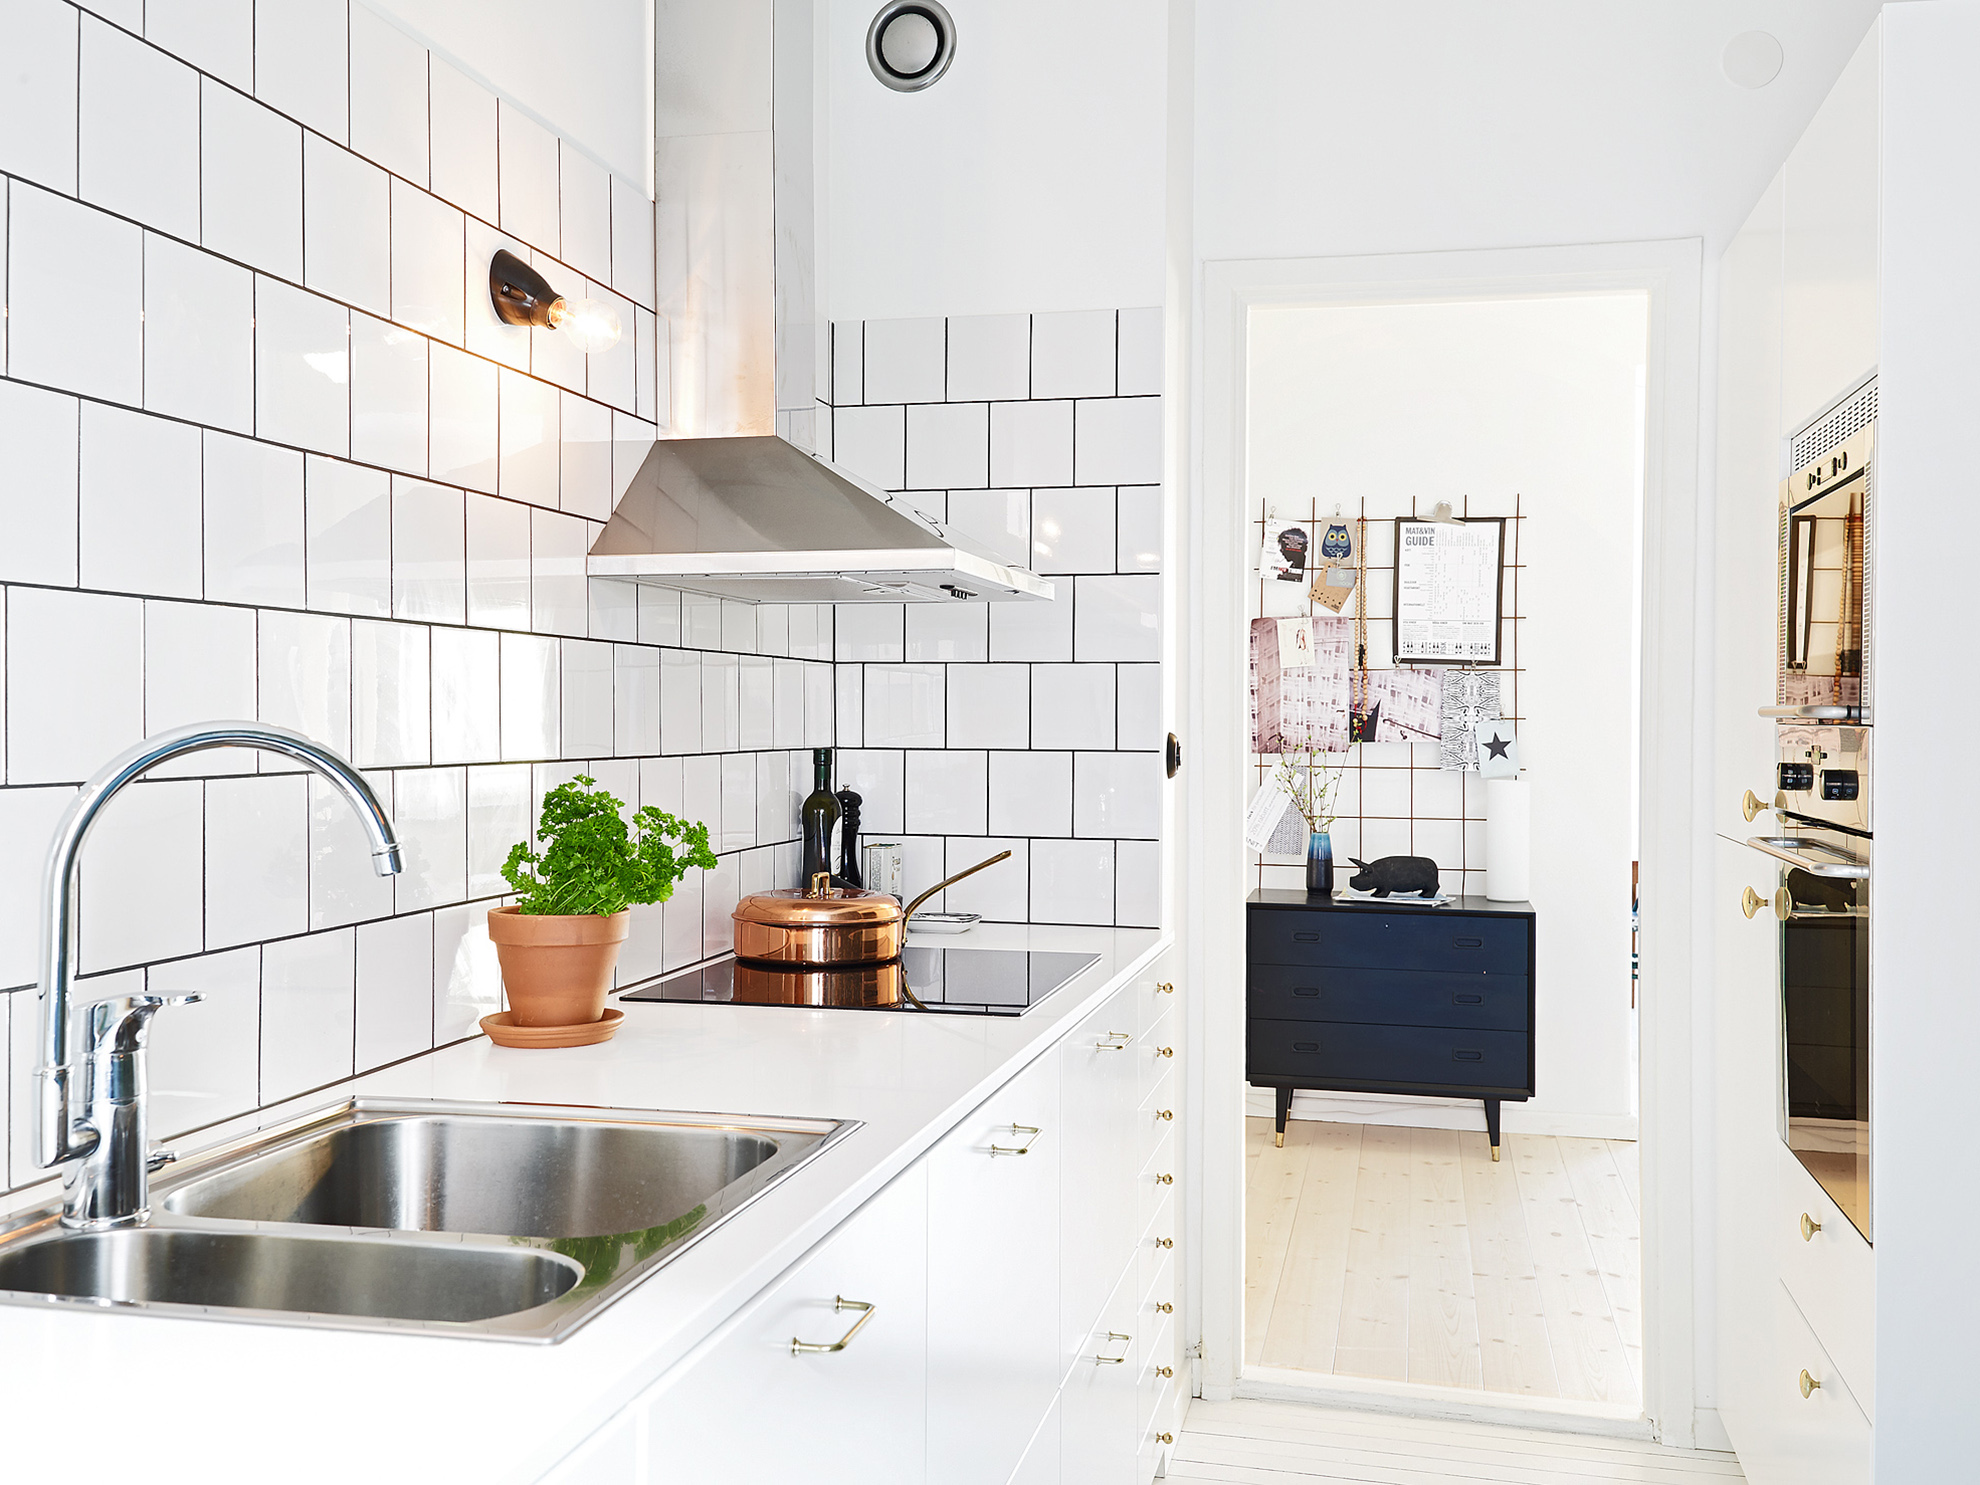 Kitchen subway tiles are back in style 50 inspiring designs by shape square tiles dailygadgetfo Image collections